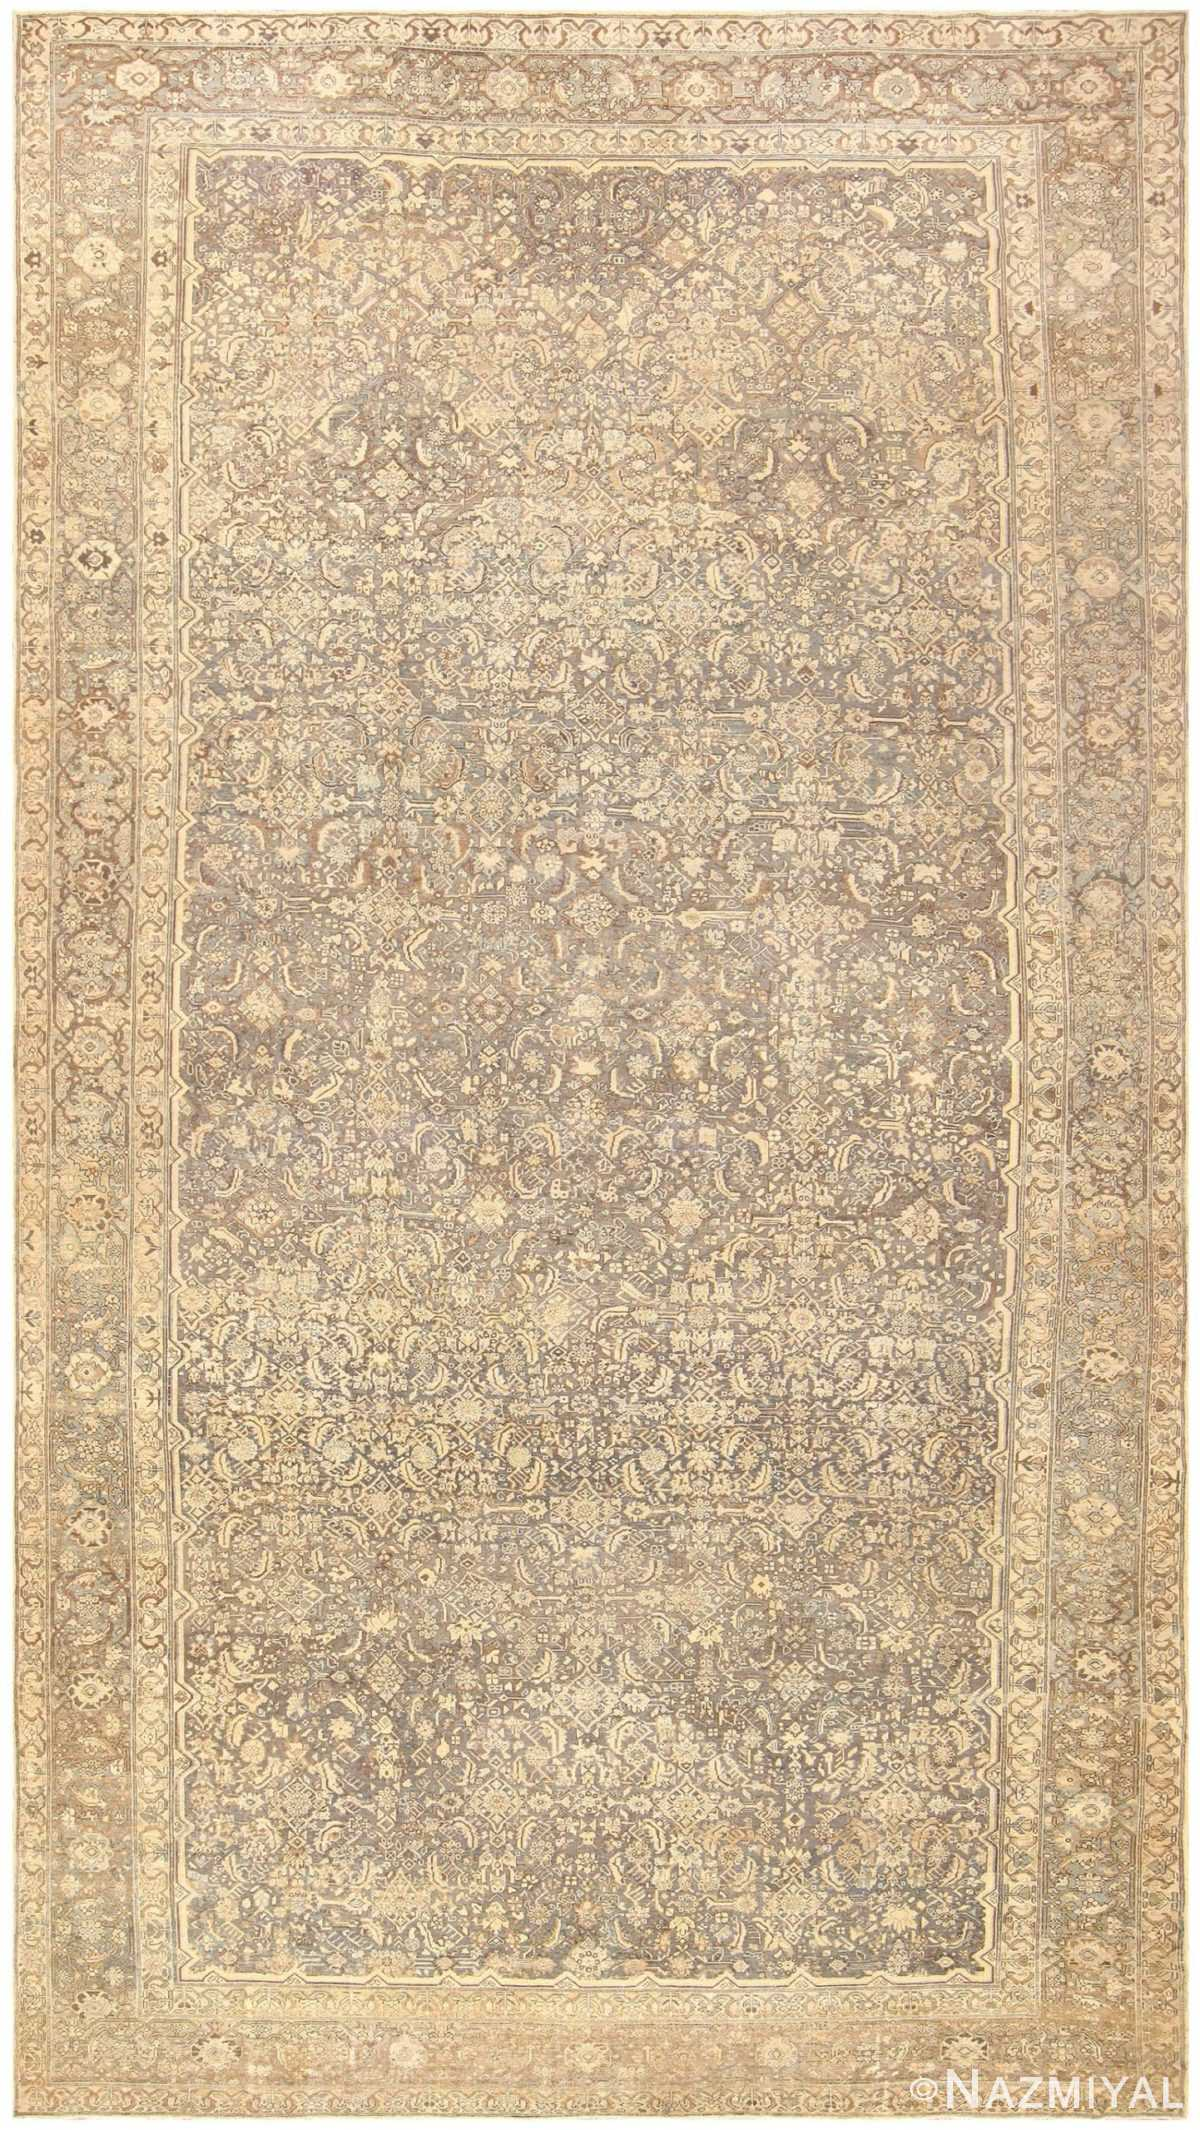 Antique Oversized Persian Malayer Carpet 46139 Detail/Large View